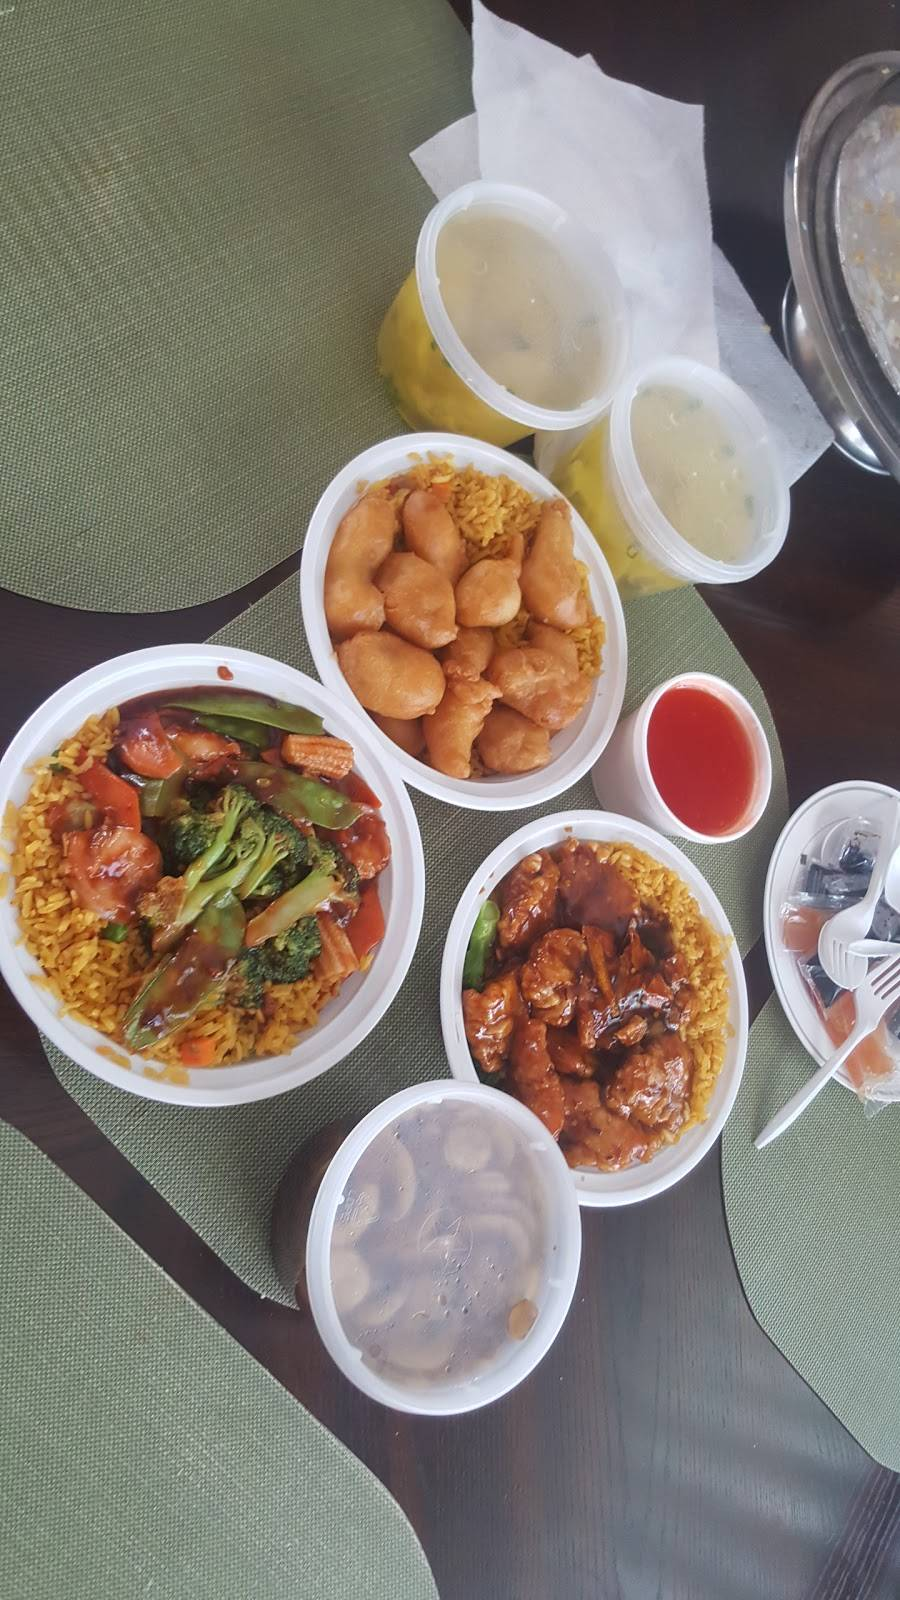 Phoenix House | meal delivery | 321 Oak St, Uniondale, NY 11553, USA | 5162926198 OR +1 516-292-6198